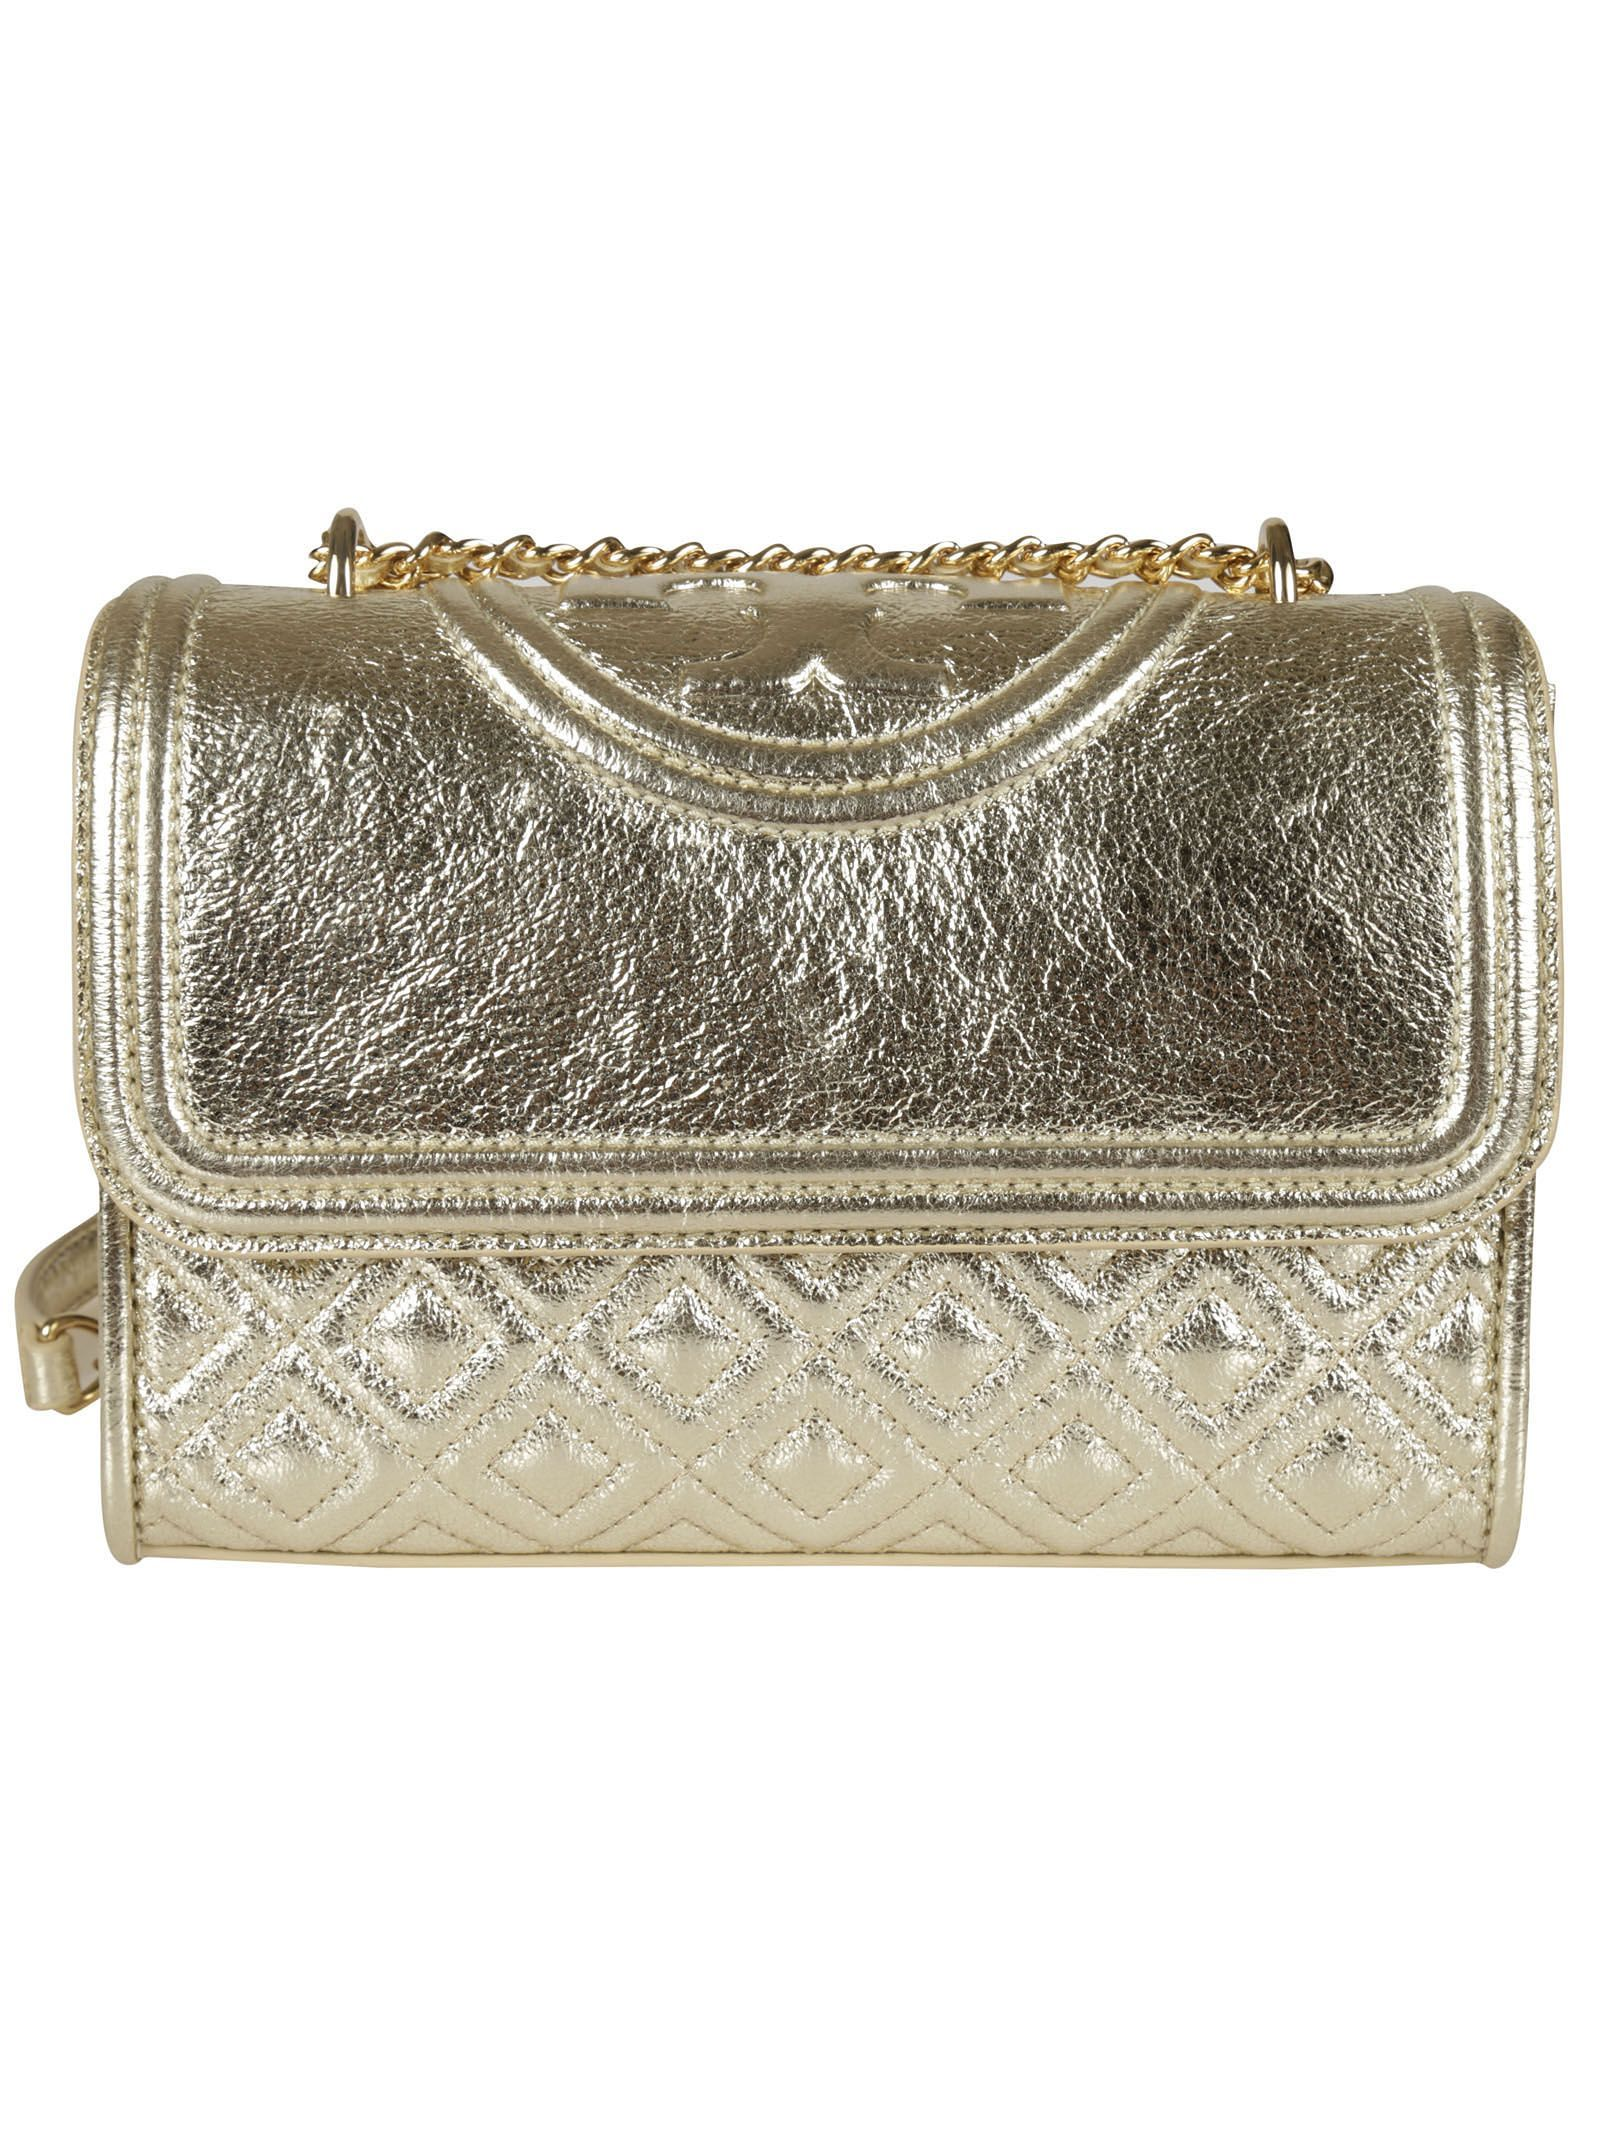 bd8de28507d GABRIELLE'S AMAZING FANTASY CLOSET | Small Fleming Convertible Shoulder Bag  from Tory Burch: Spark Gold Small Fleming Convertible Shoulder Bag with  Crinkled ...